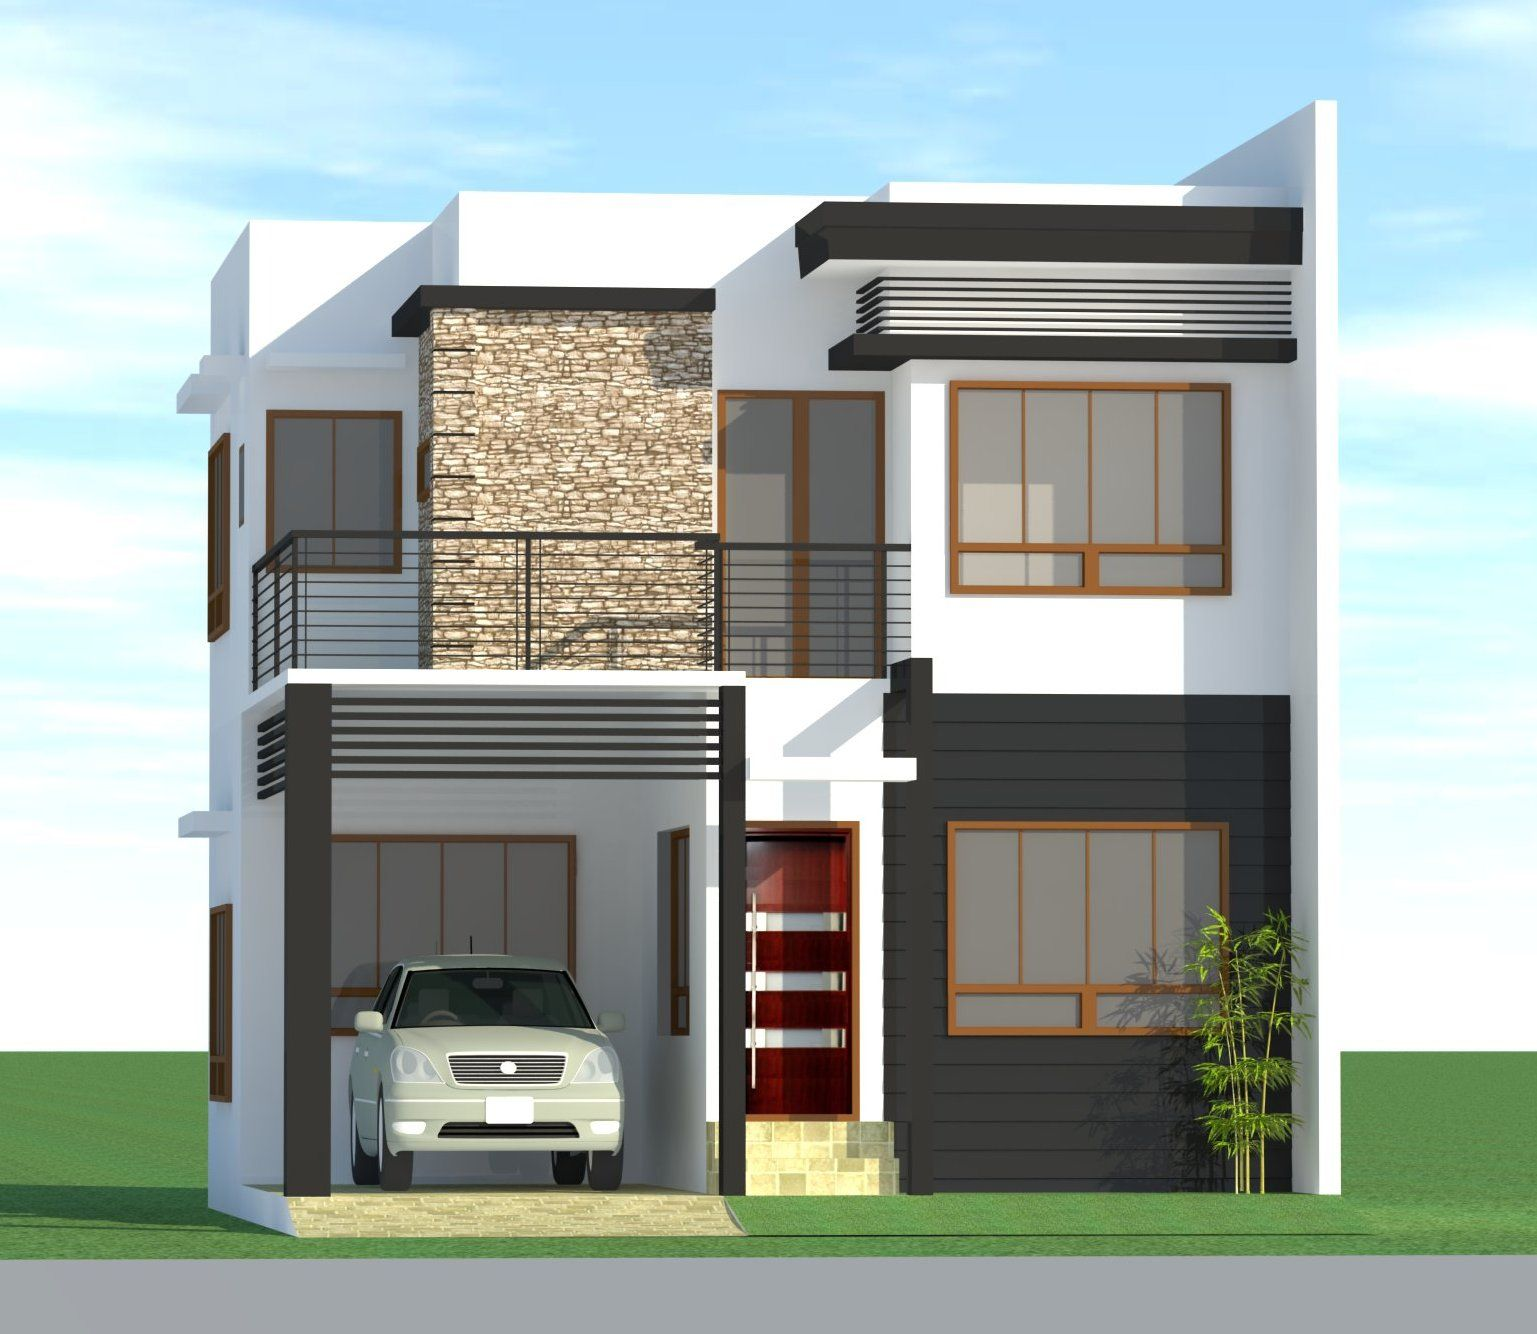 Philippines house design images 3 home design ideas House design templates